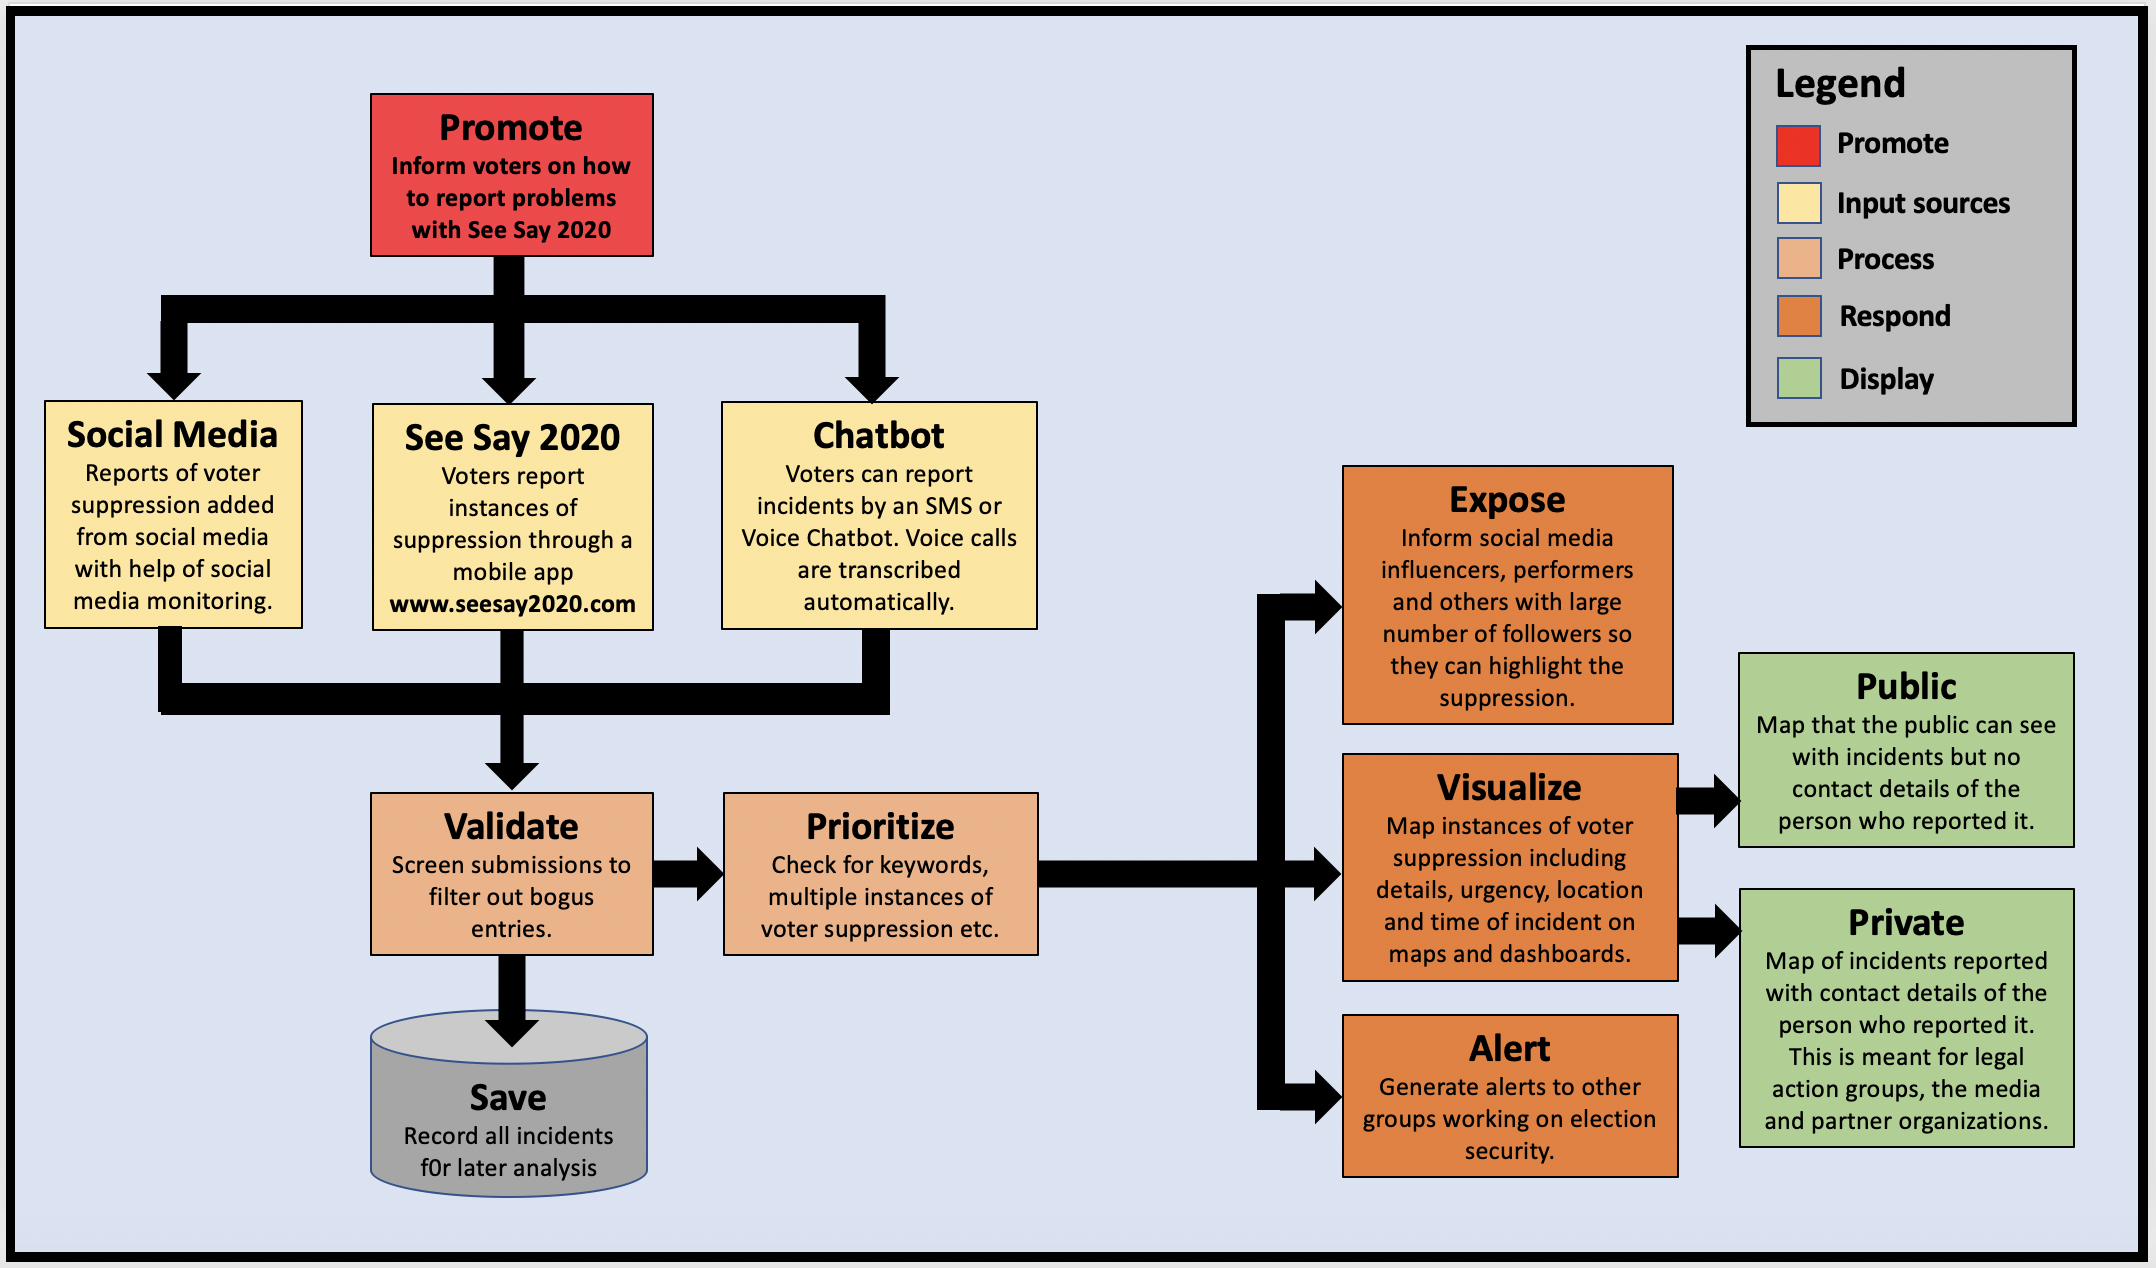 Schematic of how SeeSay2020 process reports of voter suppression to create realtime maps and alerts.